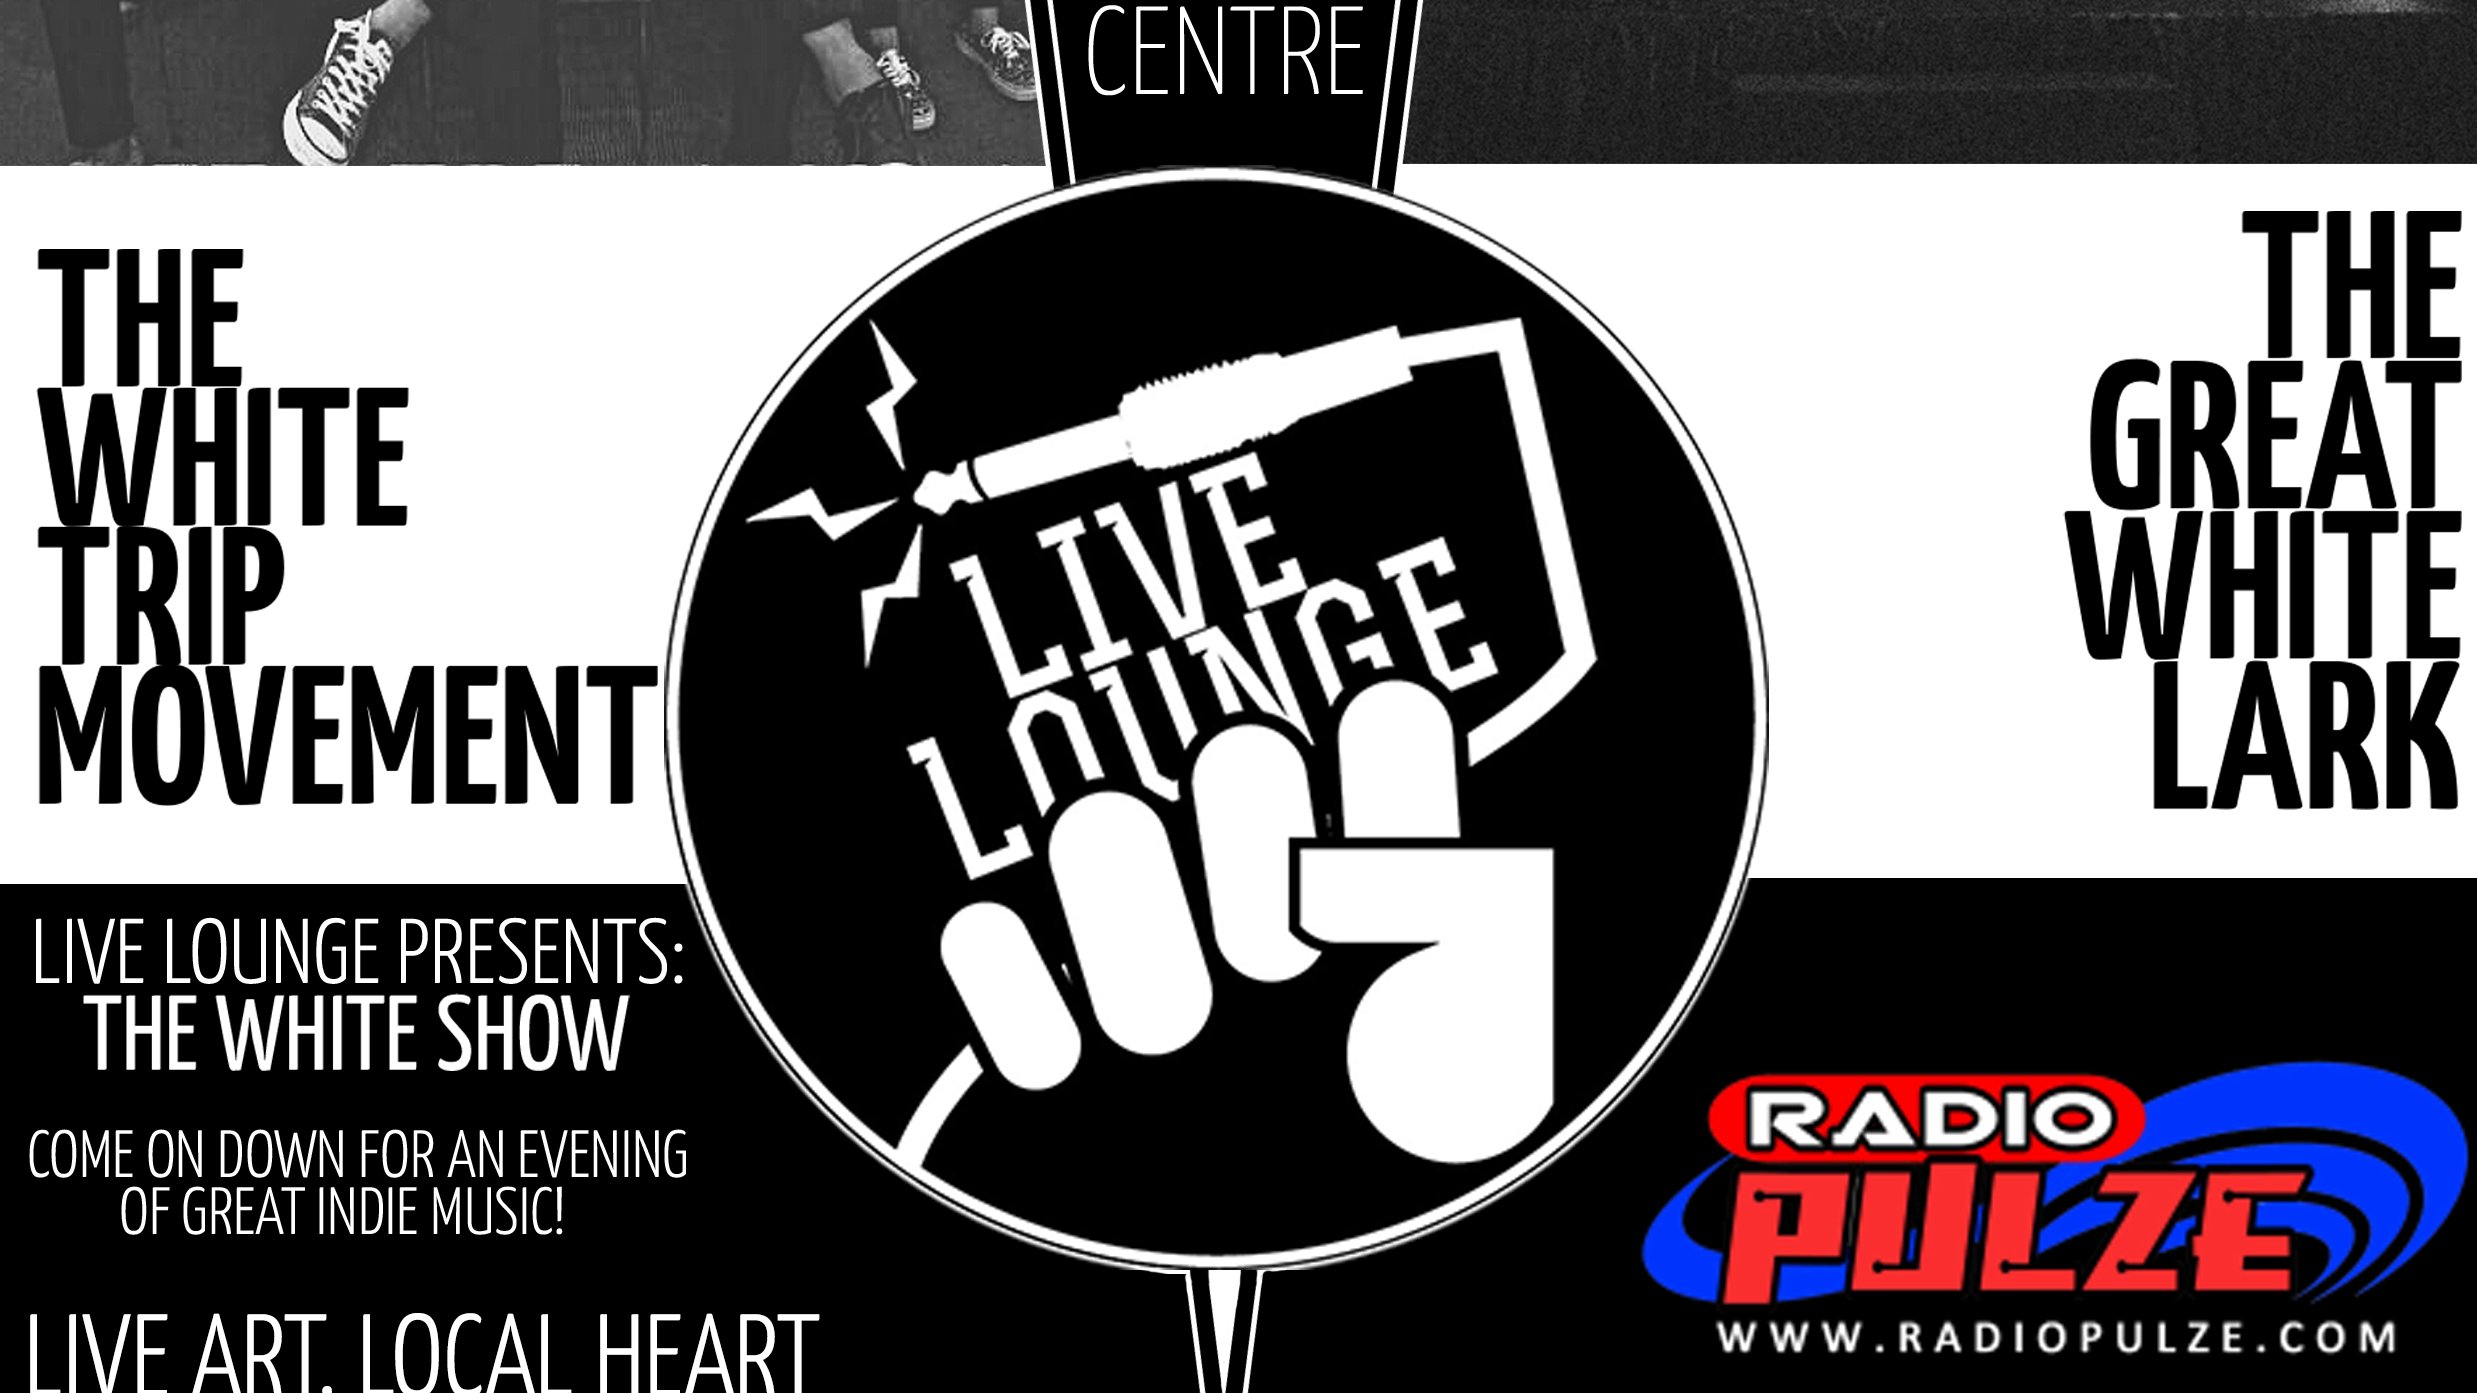 LIVE LOUNGE | SHOW TWO [The Great White Lark, The White Trip Movement]